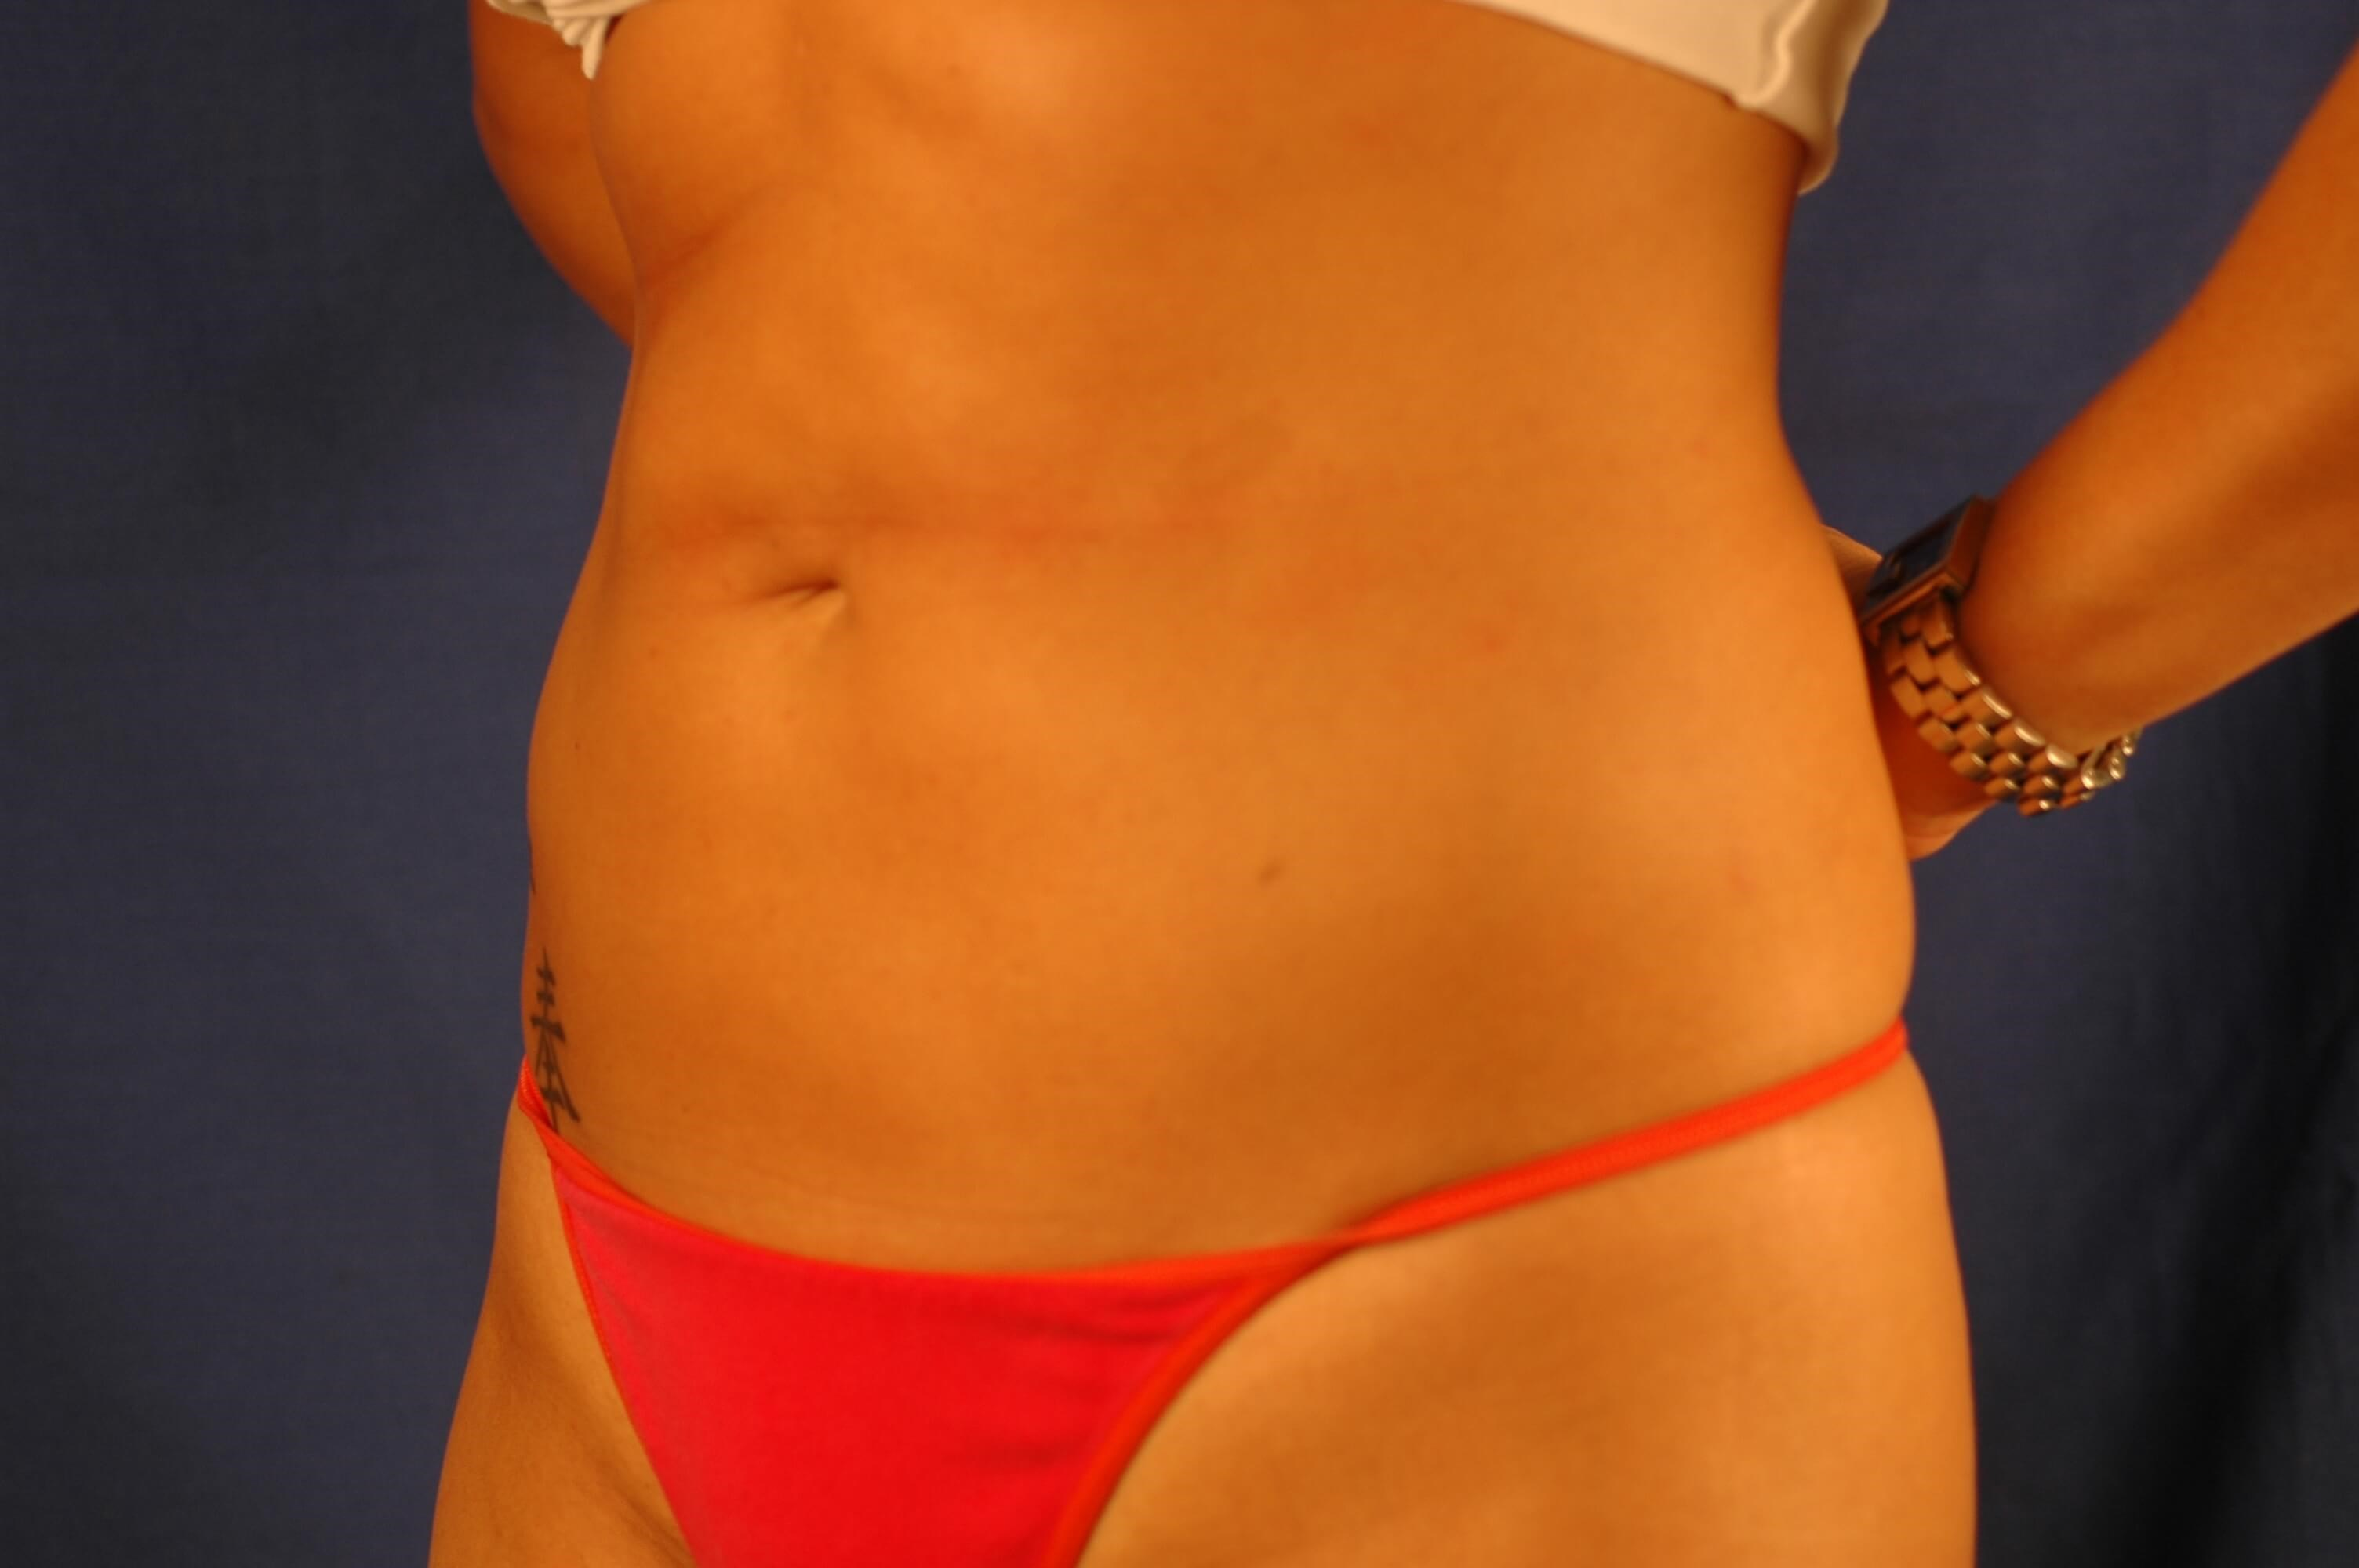 Newport Beach Liposuction Oblique View After